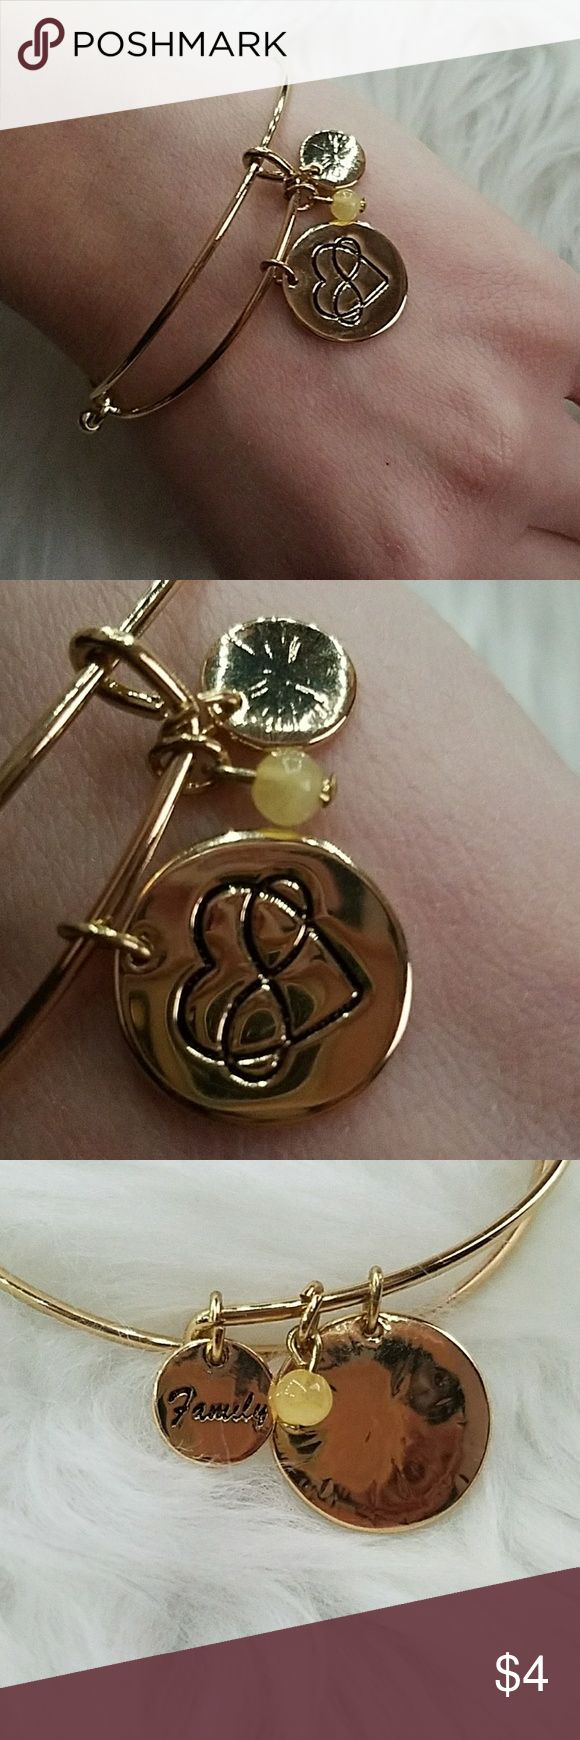 Gold charm bracelet Never worn. Heart infinity sign on one charm. Other charm says family. Bead charm is a pastel yellow. Jewelry Bracelets